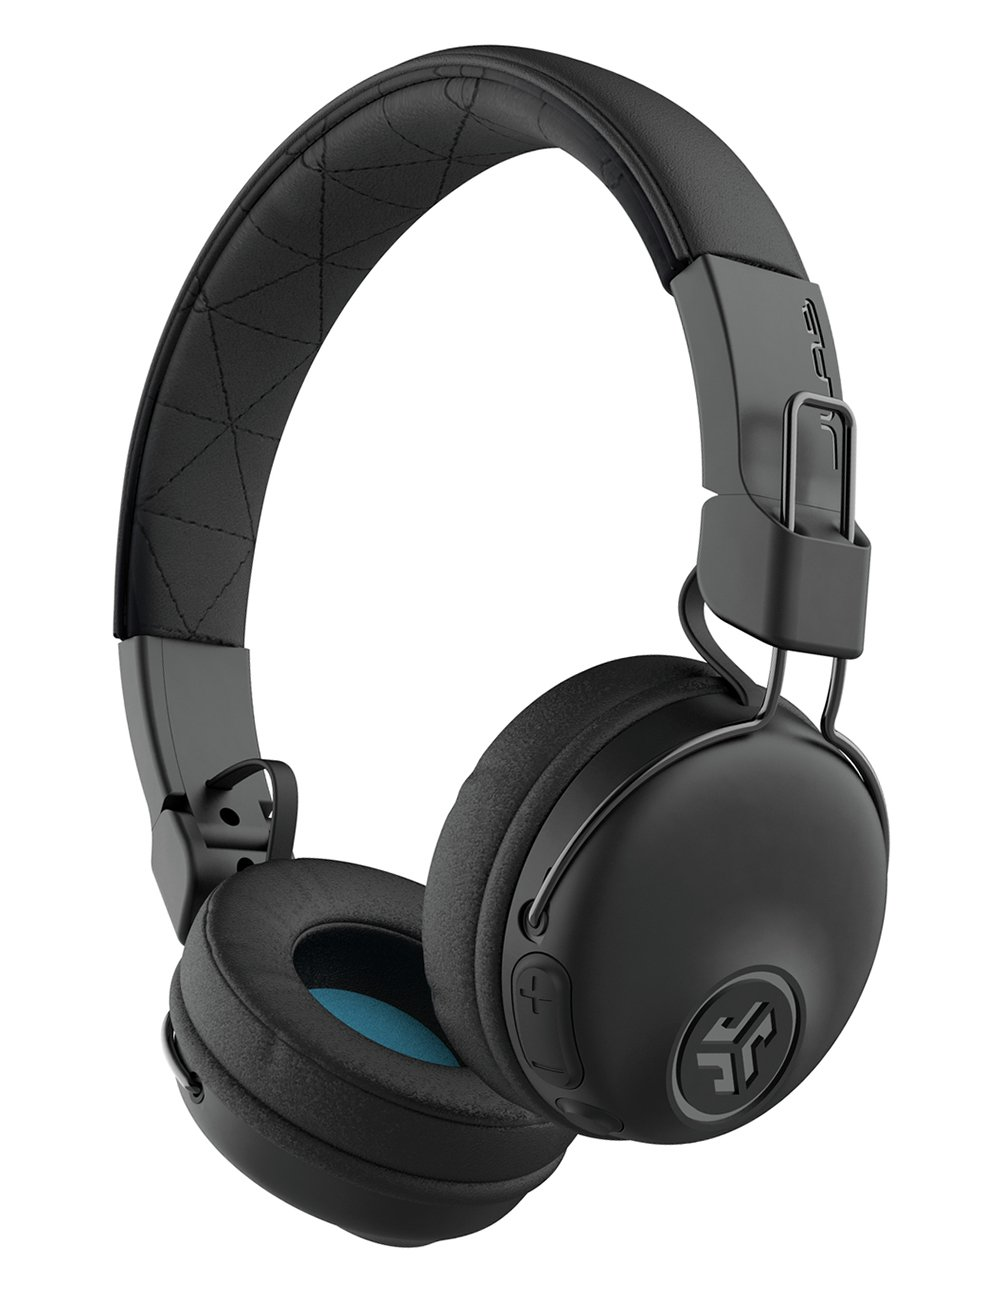 JLAB Studio On-Ear Wireless Headphones - Black